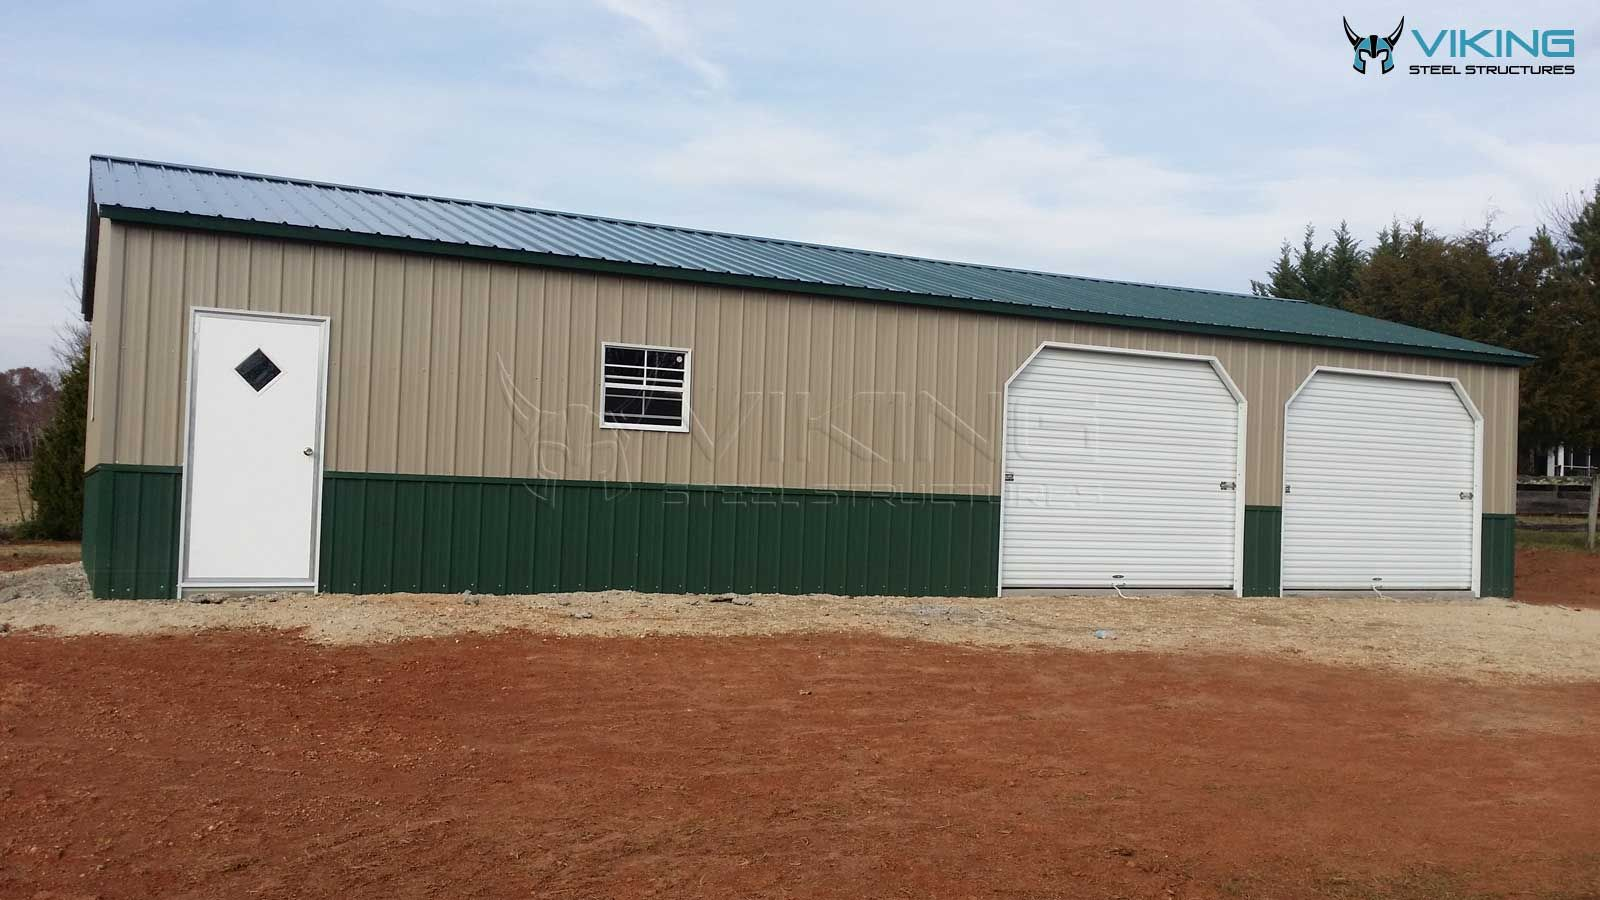 30 X55 X9 All Vertical Two Tone Garage In 2020 Steel Buildings Building Metal Structure